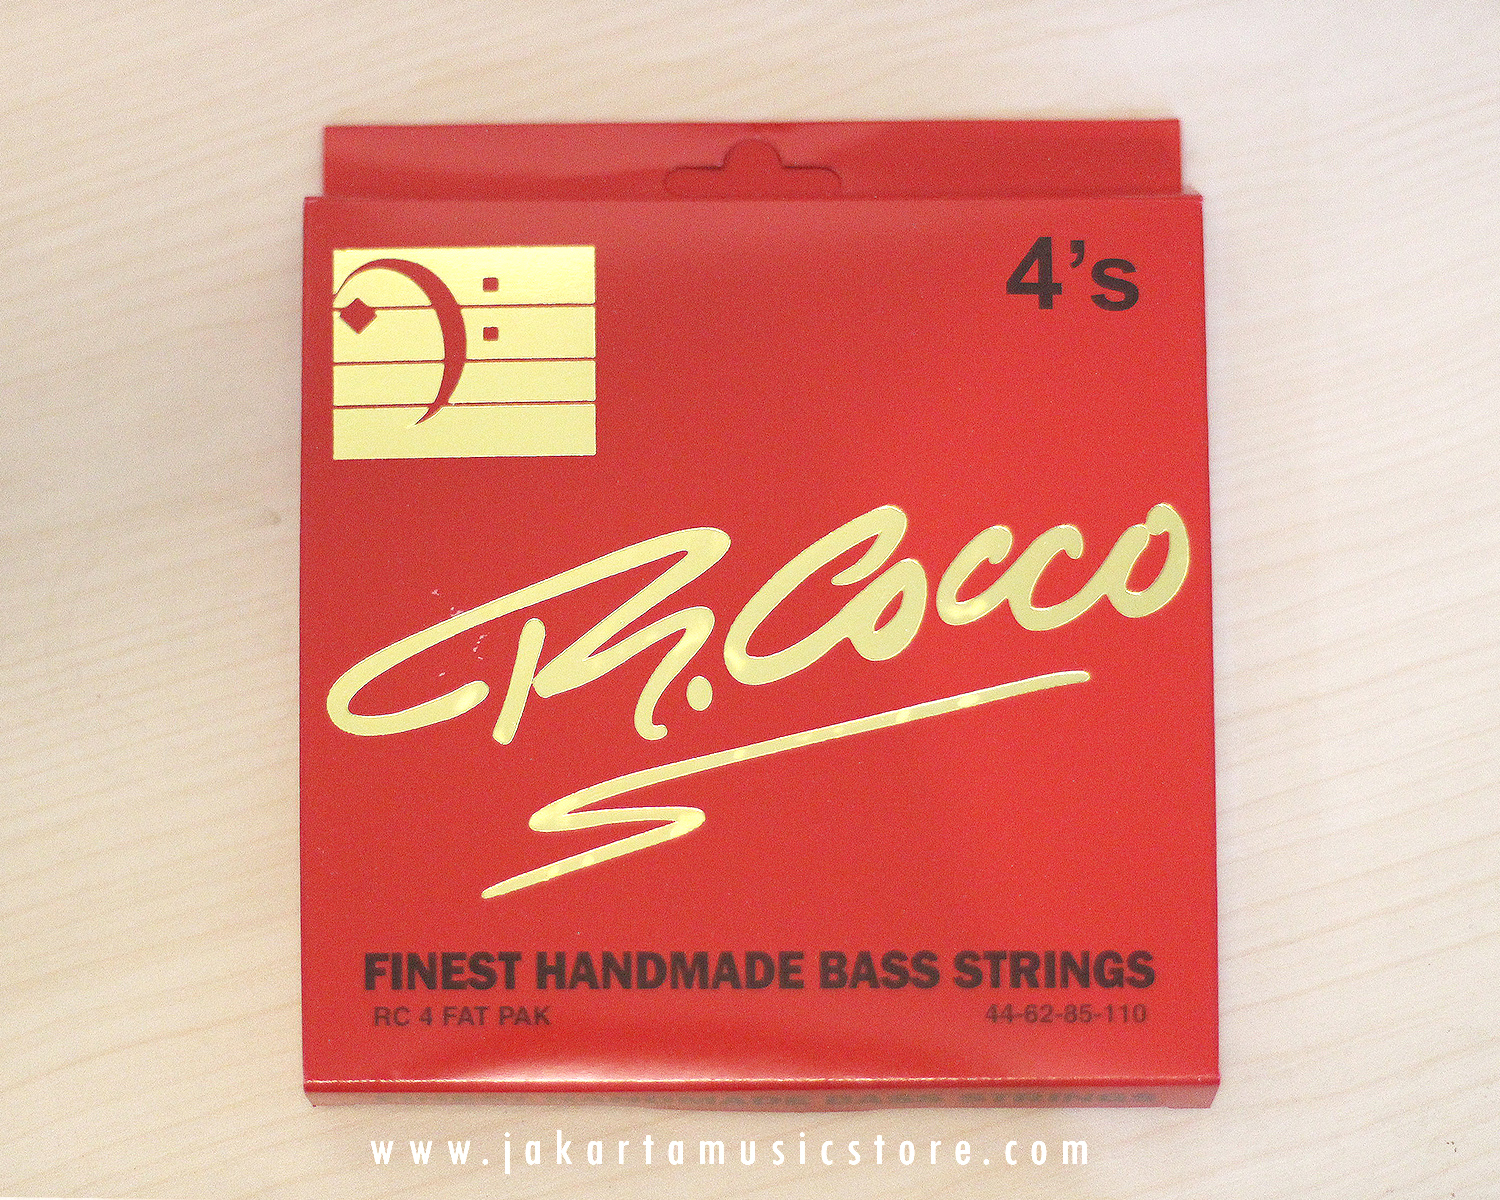 R Cocco 4 FAT PAK STainless Steel Strings